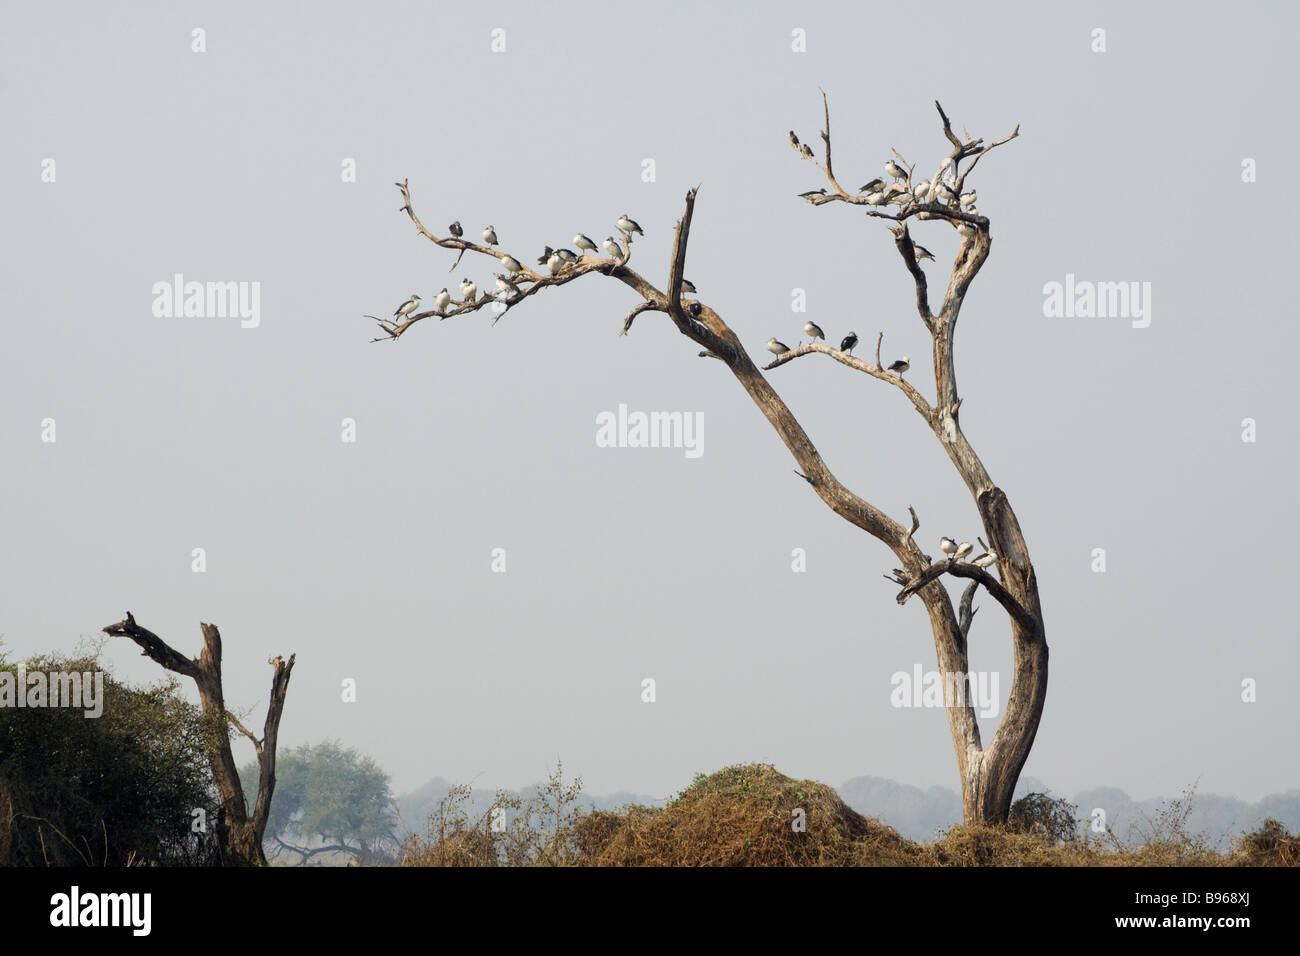 Comb Duck Roosting in dead tree Sarkidiornis melanotos Keoladeo Ghana National Park Bharatpur Rajasthan India BI017672 - Stock Image